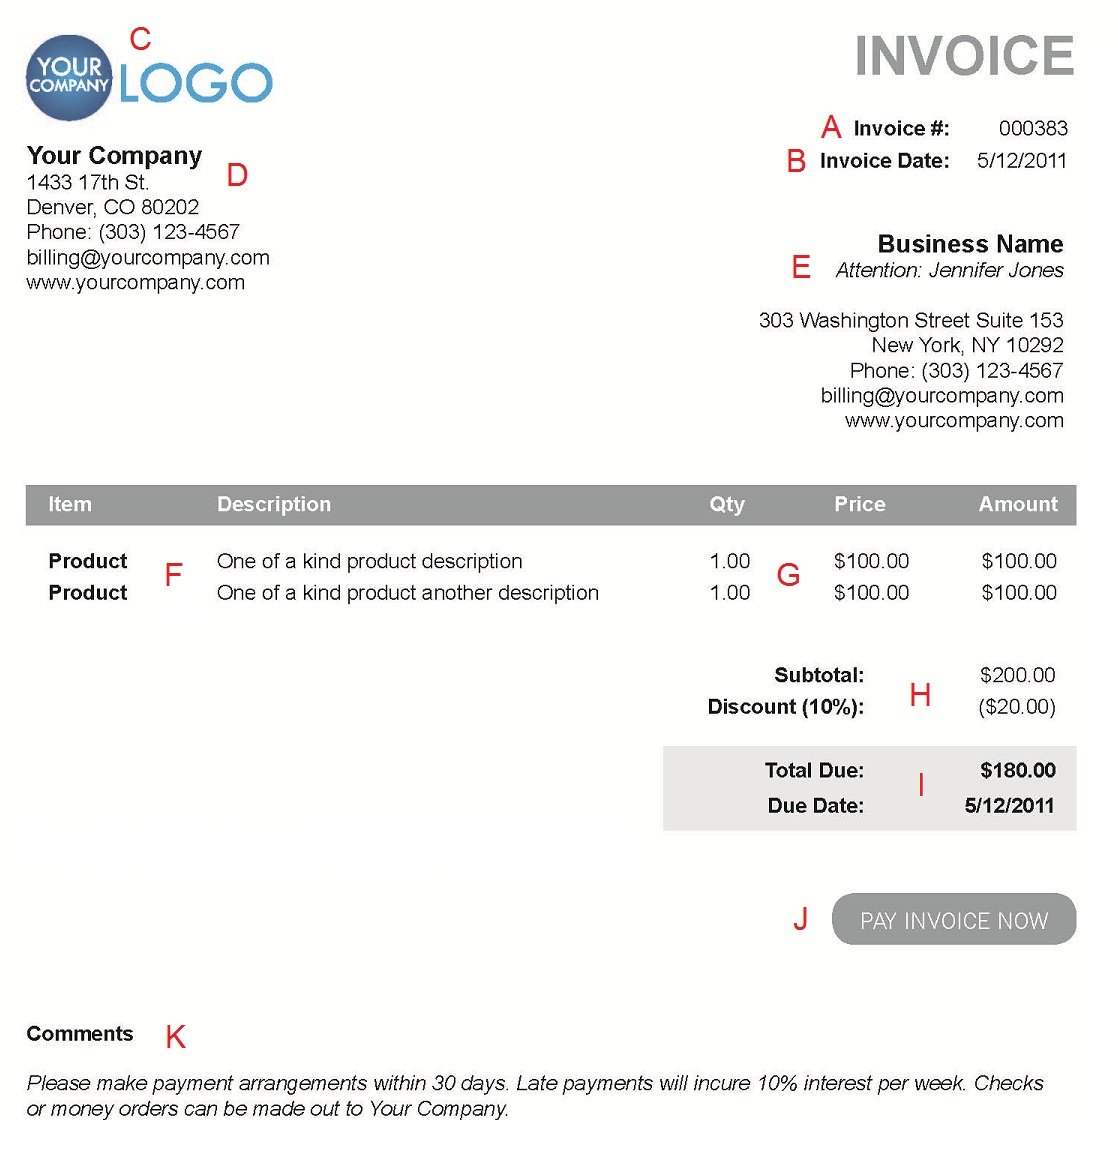 Hius  Pleasant The  Different Sections Of An Electronic Payment Invoice With Hot A  With Enchanting Audi Dealer Invoice Price Also Invoice Tempalte In Addition Caricom Invoice And Quickbooks Invoice Sample As Well As Car Dealer Invoice Additionally Fake Invoices Templates From Paysimplecom With Hius  Hot The  Different Sections Of An Electronic Payment Invoice With Enchanting A  And Pleasant Audi Dealer Invoice Price Also Invoice Tempalte In Addition Caricom Invoice From Paysimplecom